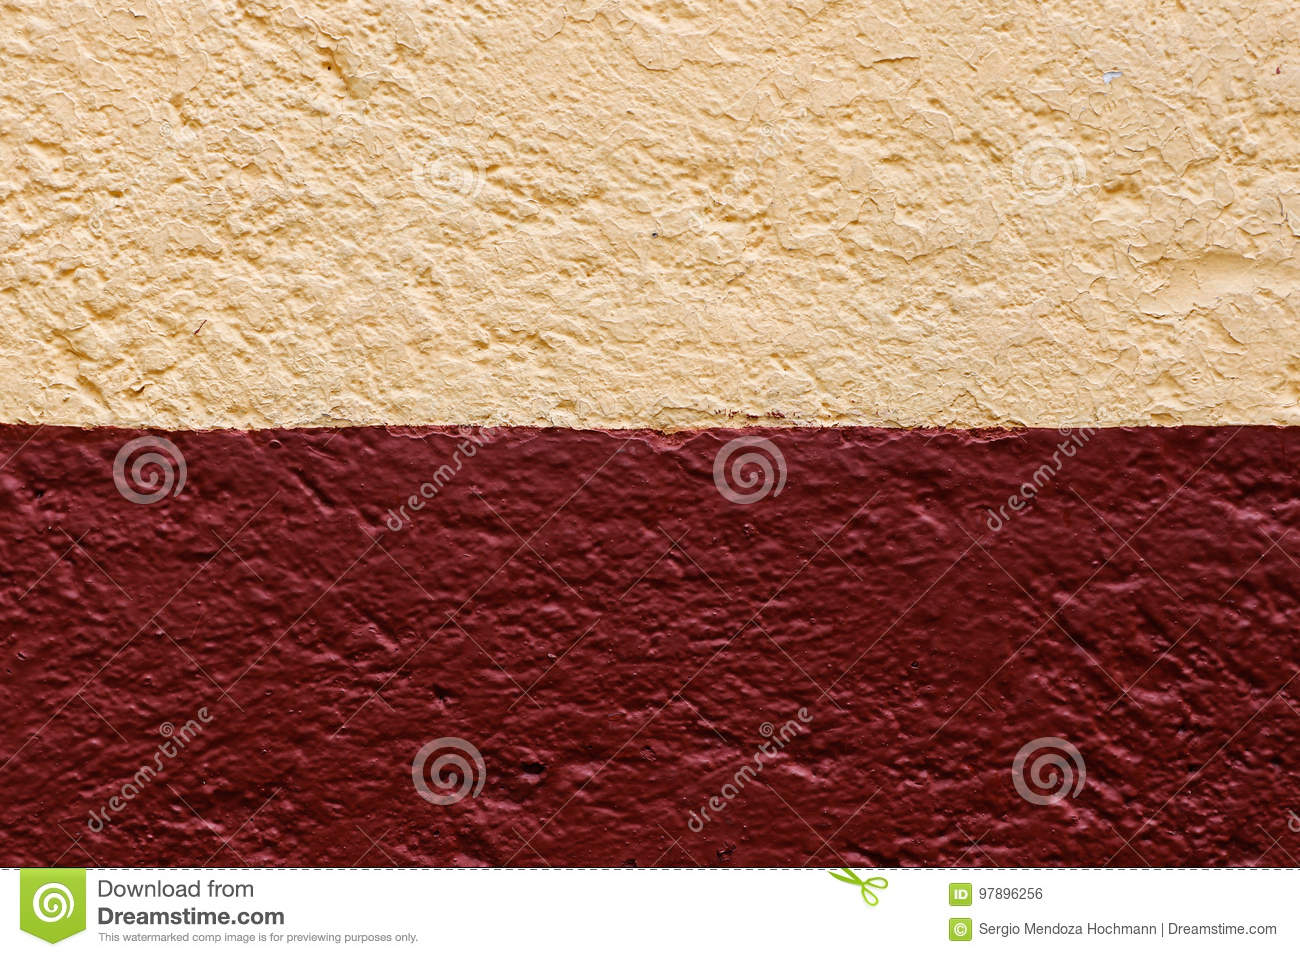 A Light Cream Color And Red Wall Texture Stock Photo - Image of ...